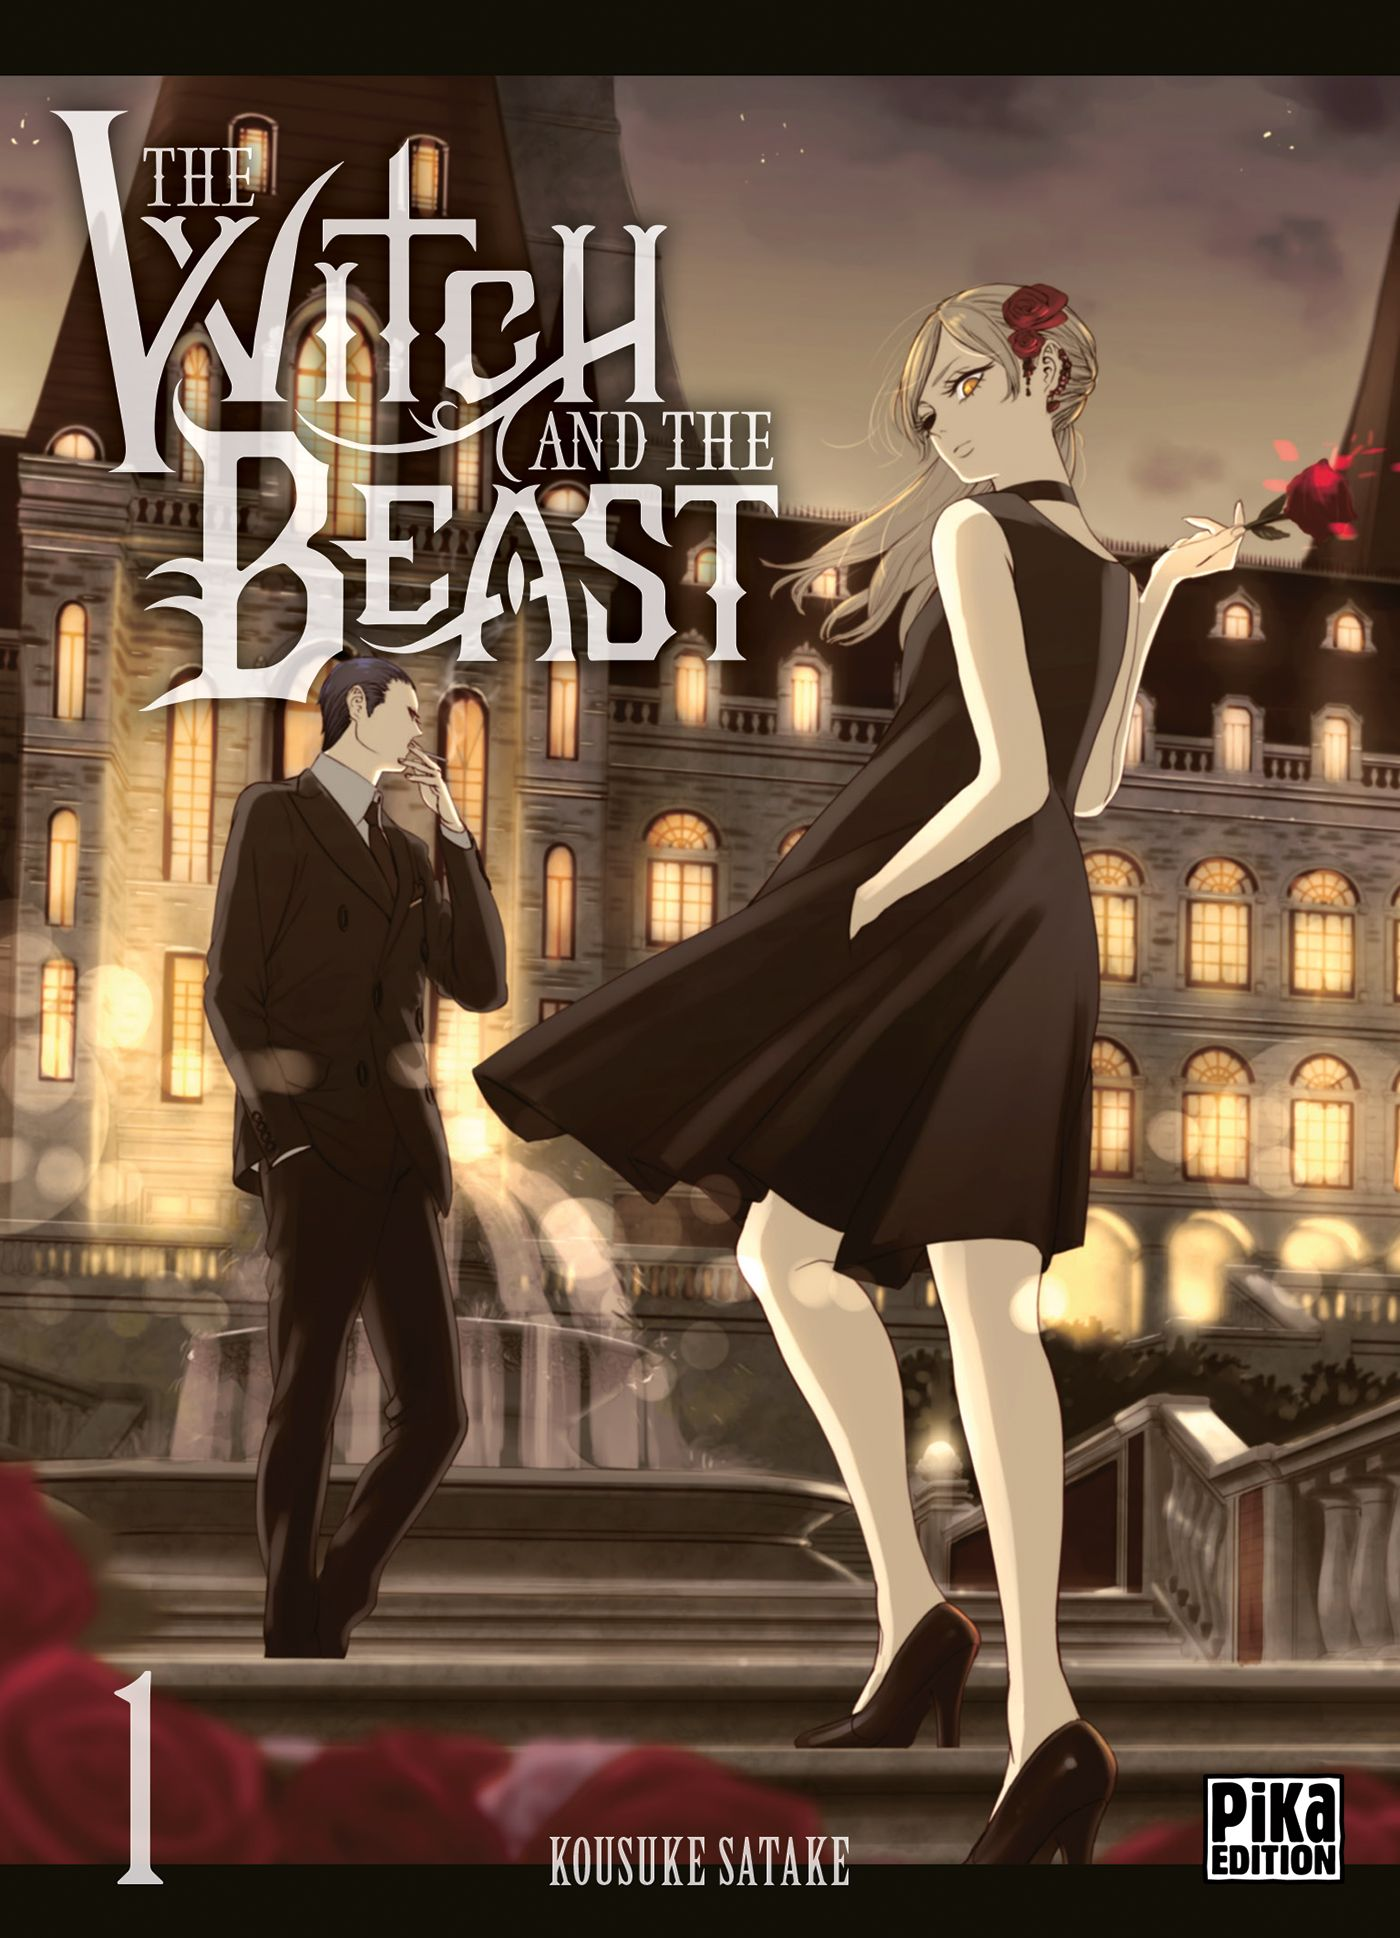 Sortie Manga au Québec JUIN 2021 The_Witch_and_the_Beast_1_pika